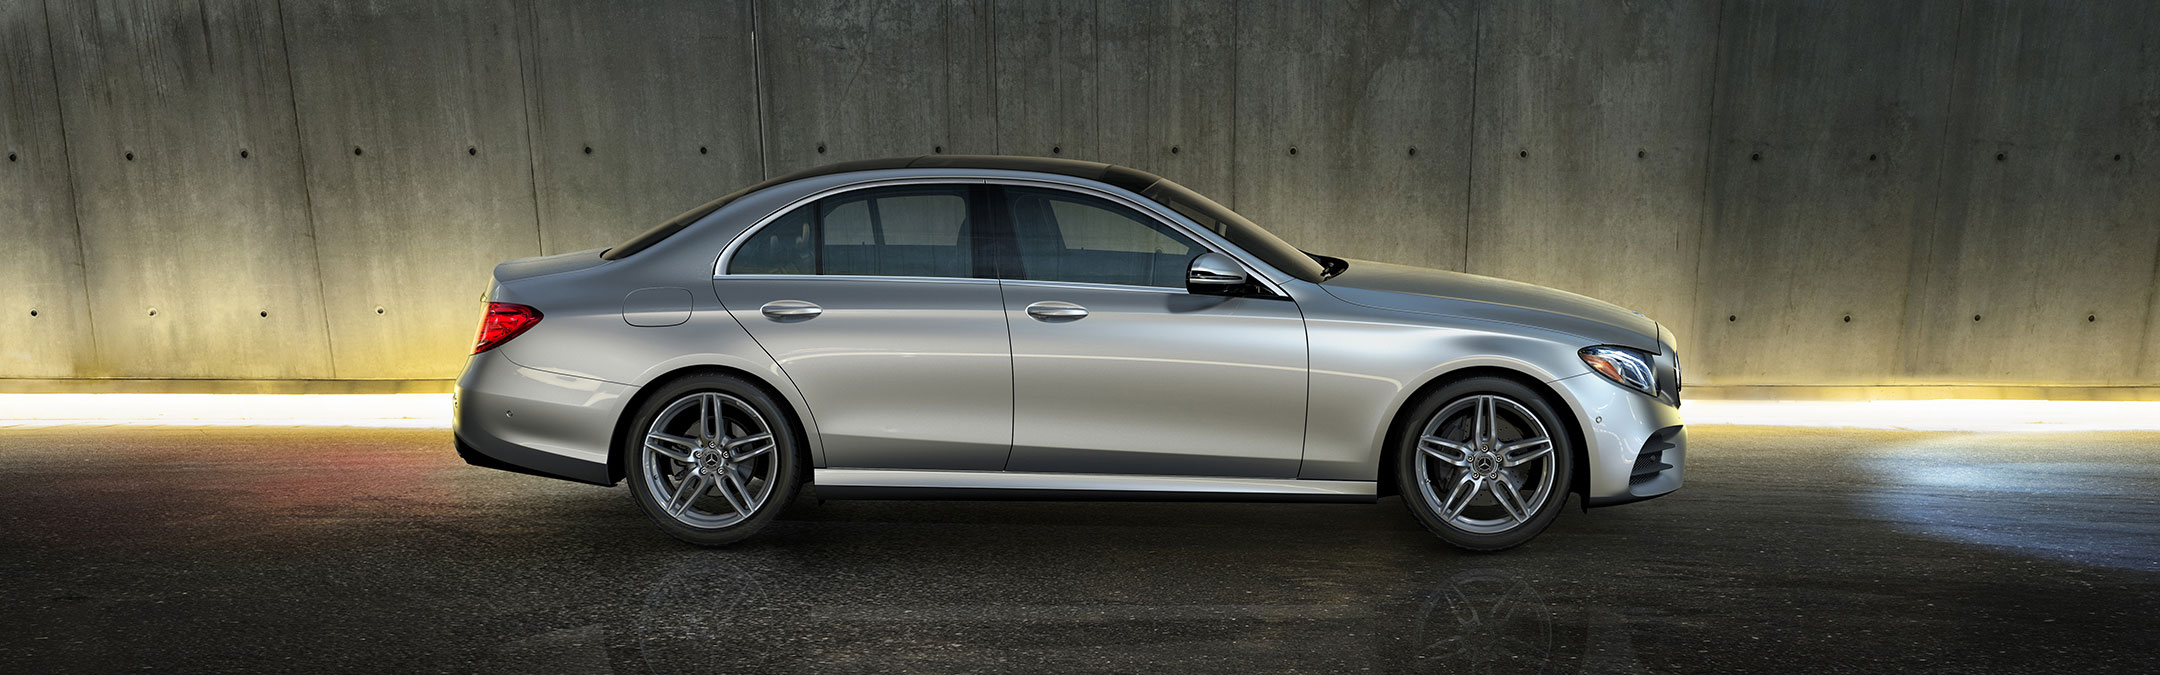 Side view of a silver 2019 Mercedes-Benz E-Class